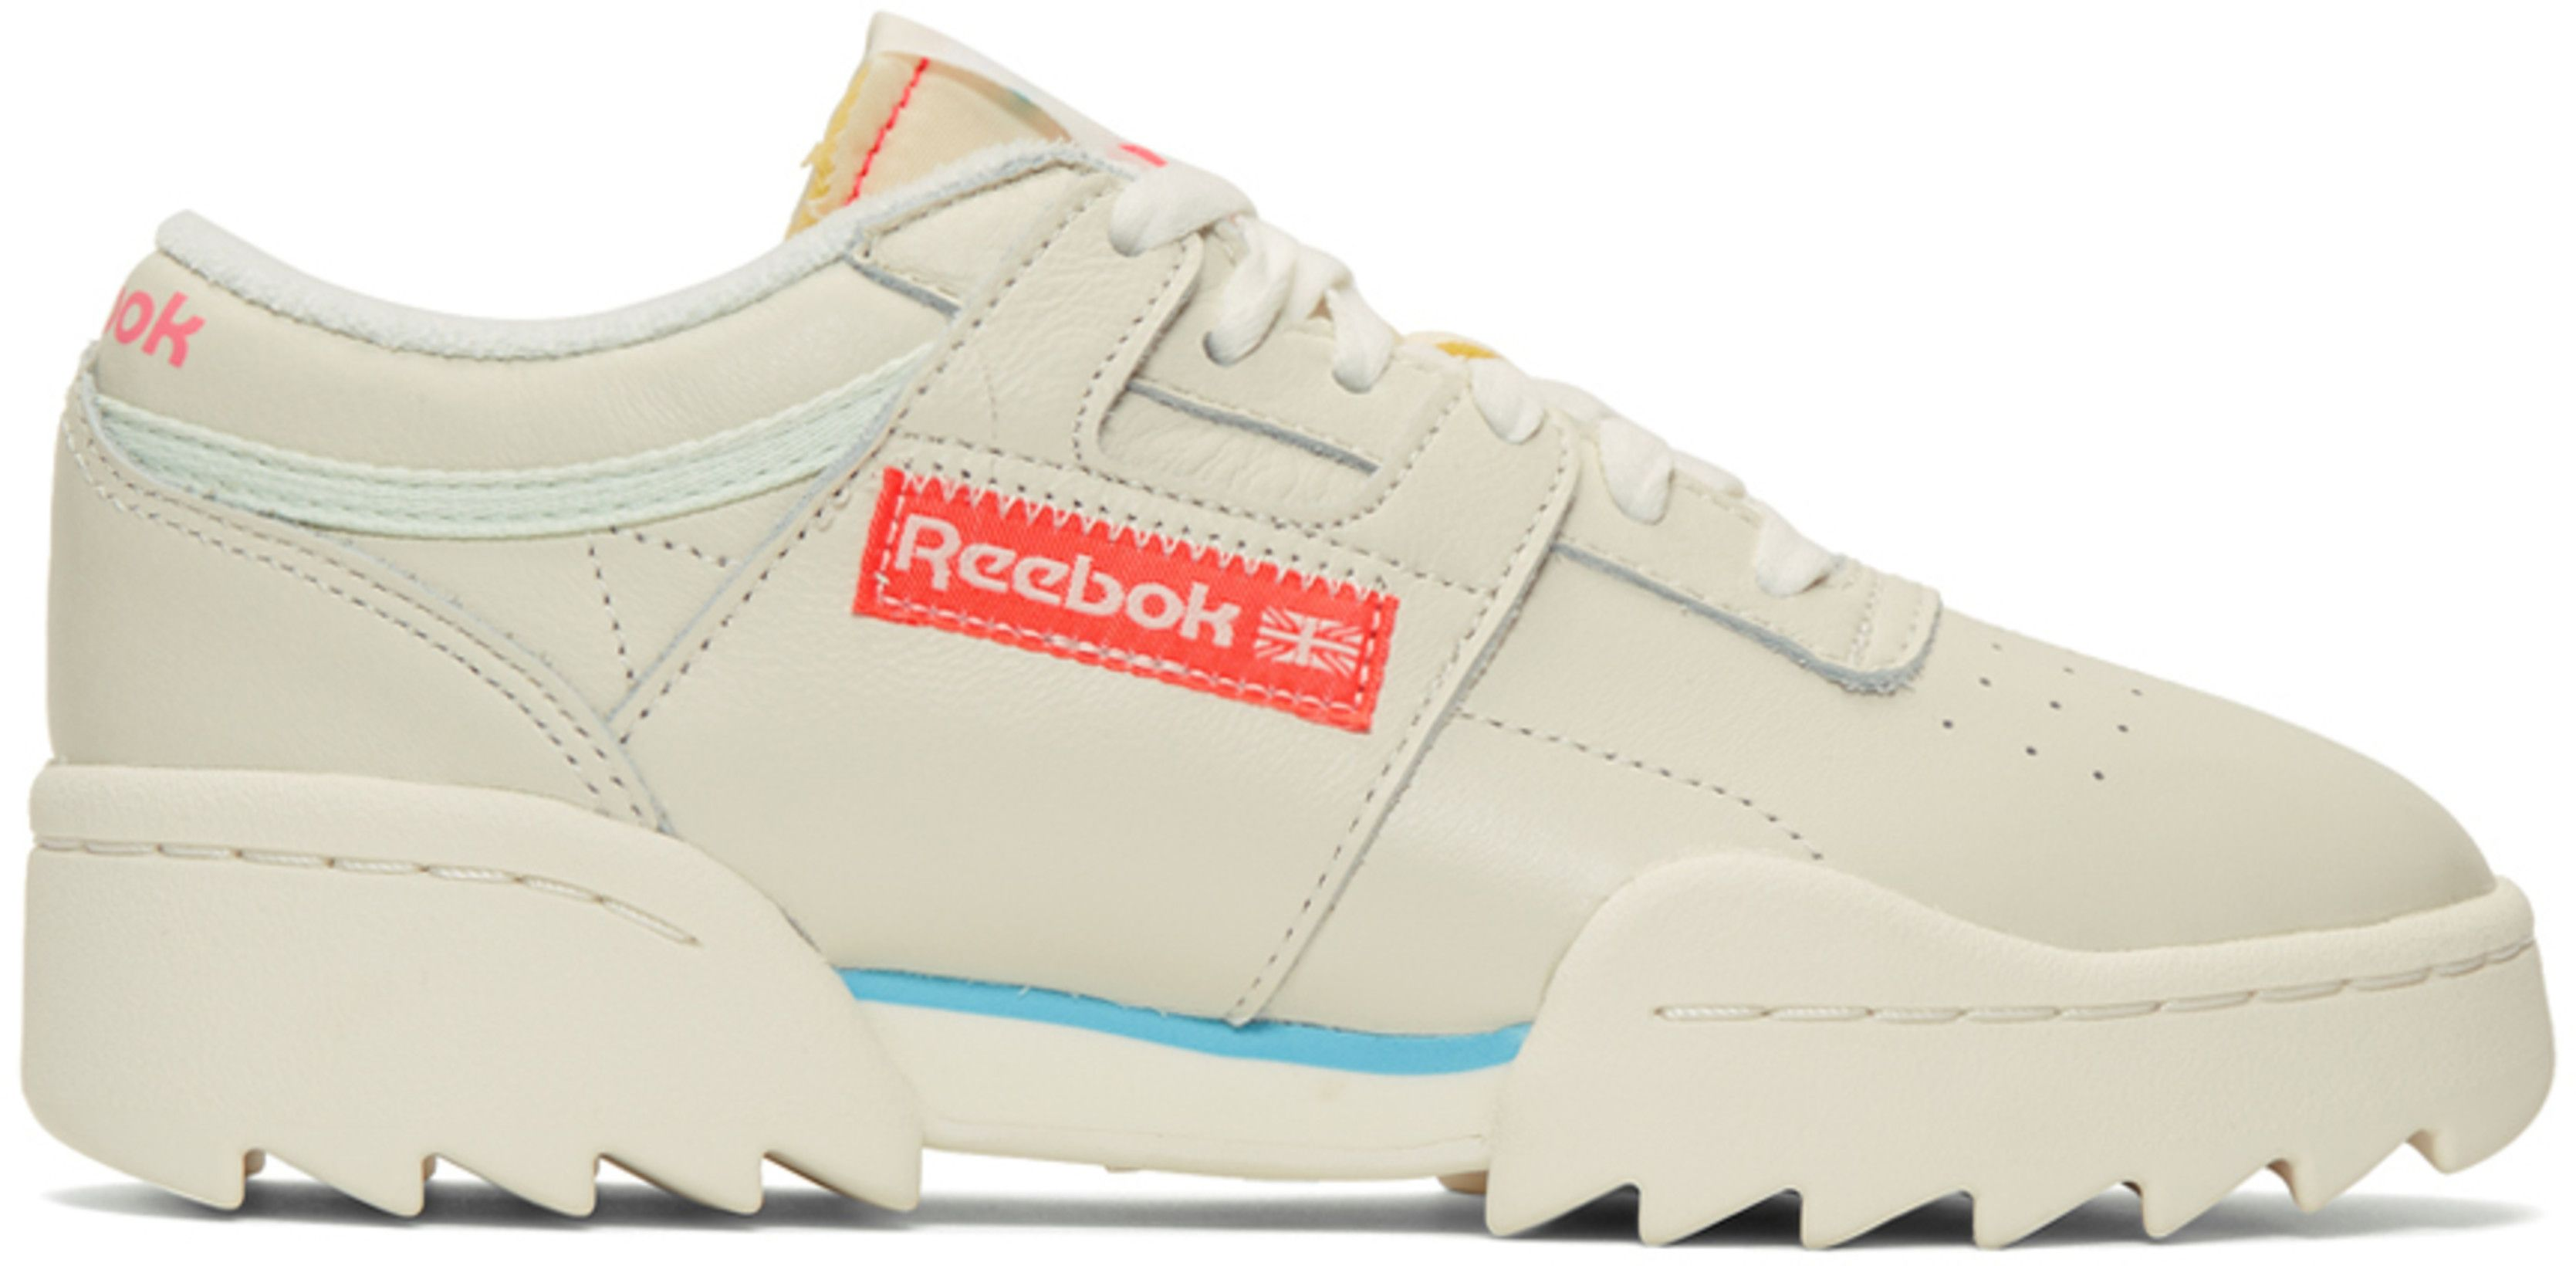 Off-White Workout Ripple OG Sneakers